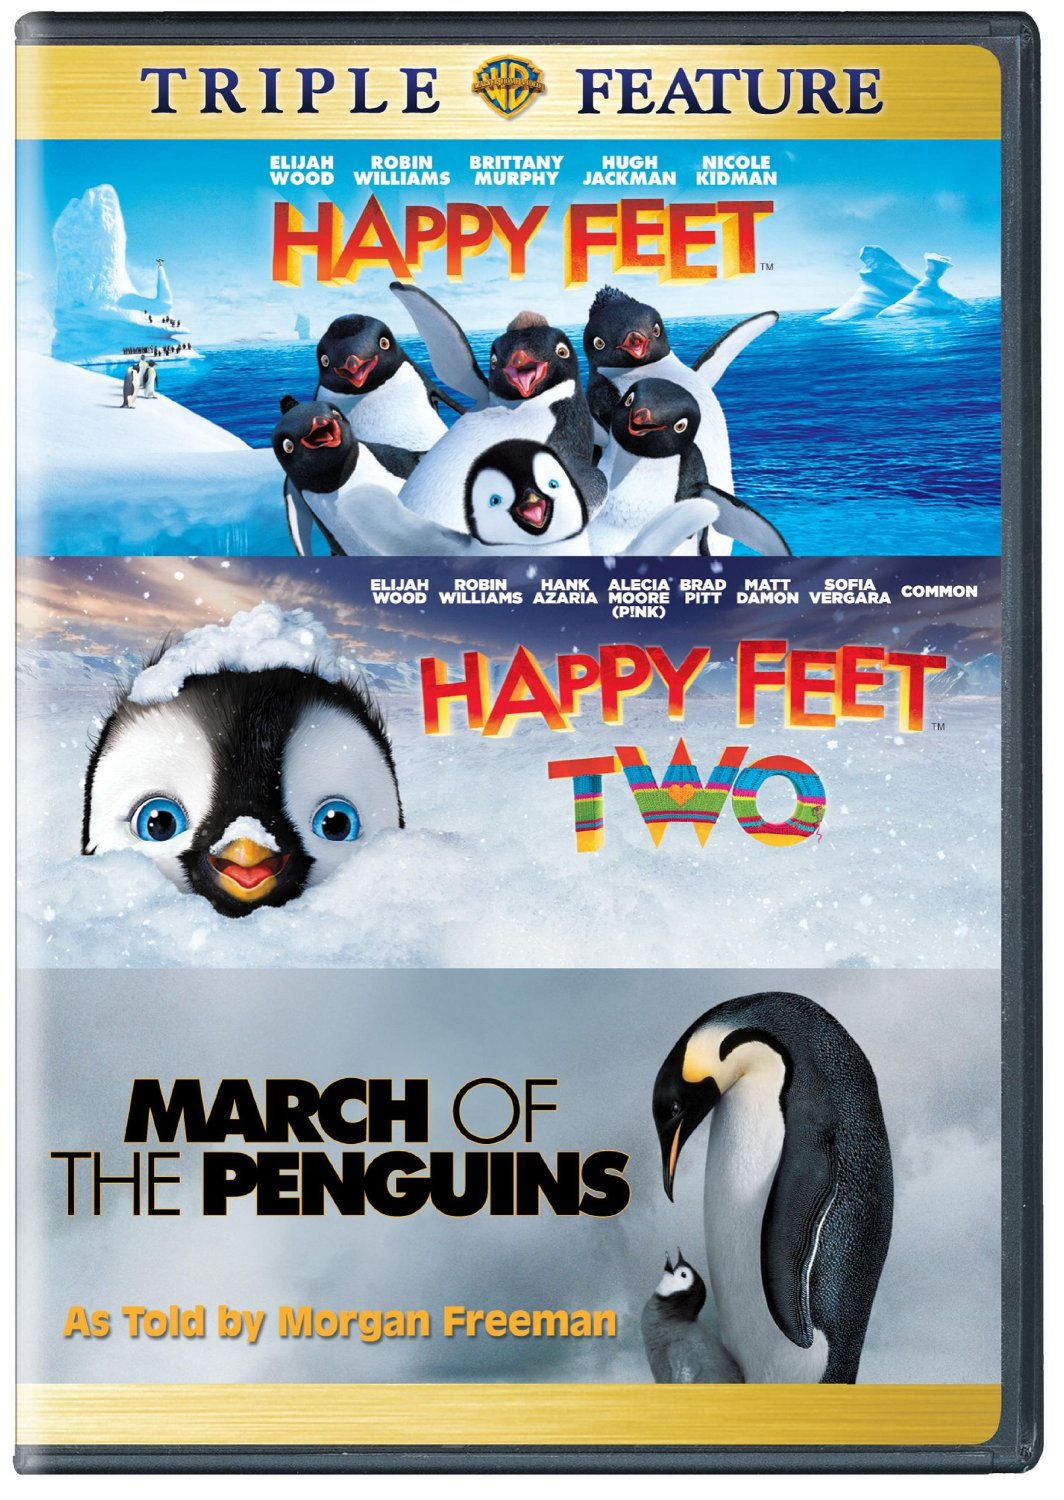 Happy Feet DVD Box Set For 6 Free Shipping From Amazon